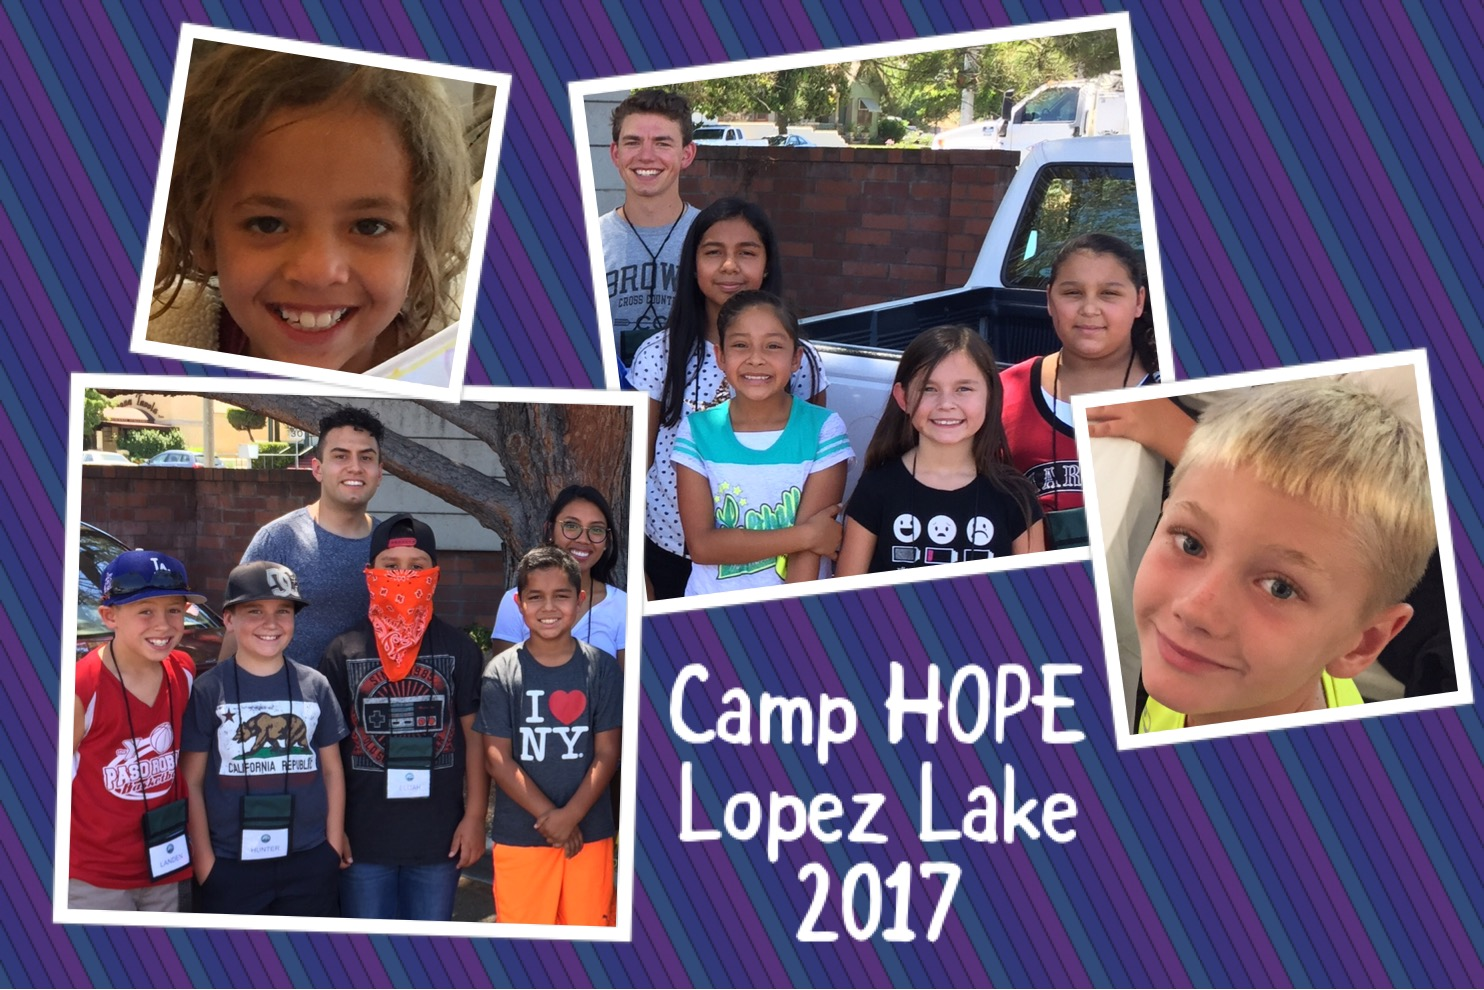 RISE Helps Local Children Find Hope through Camping